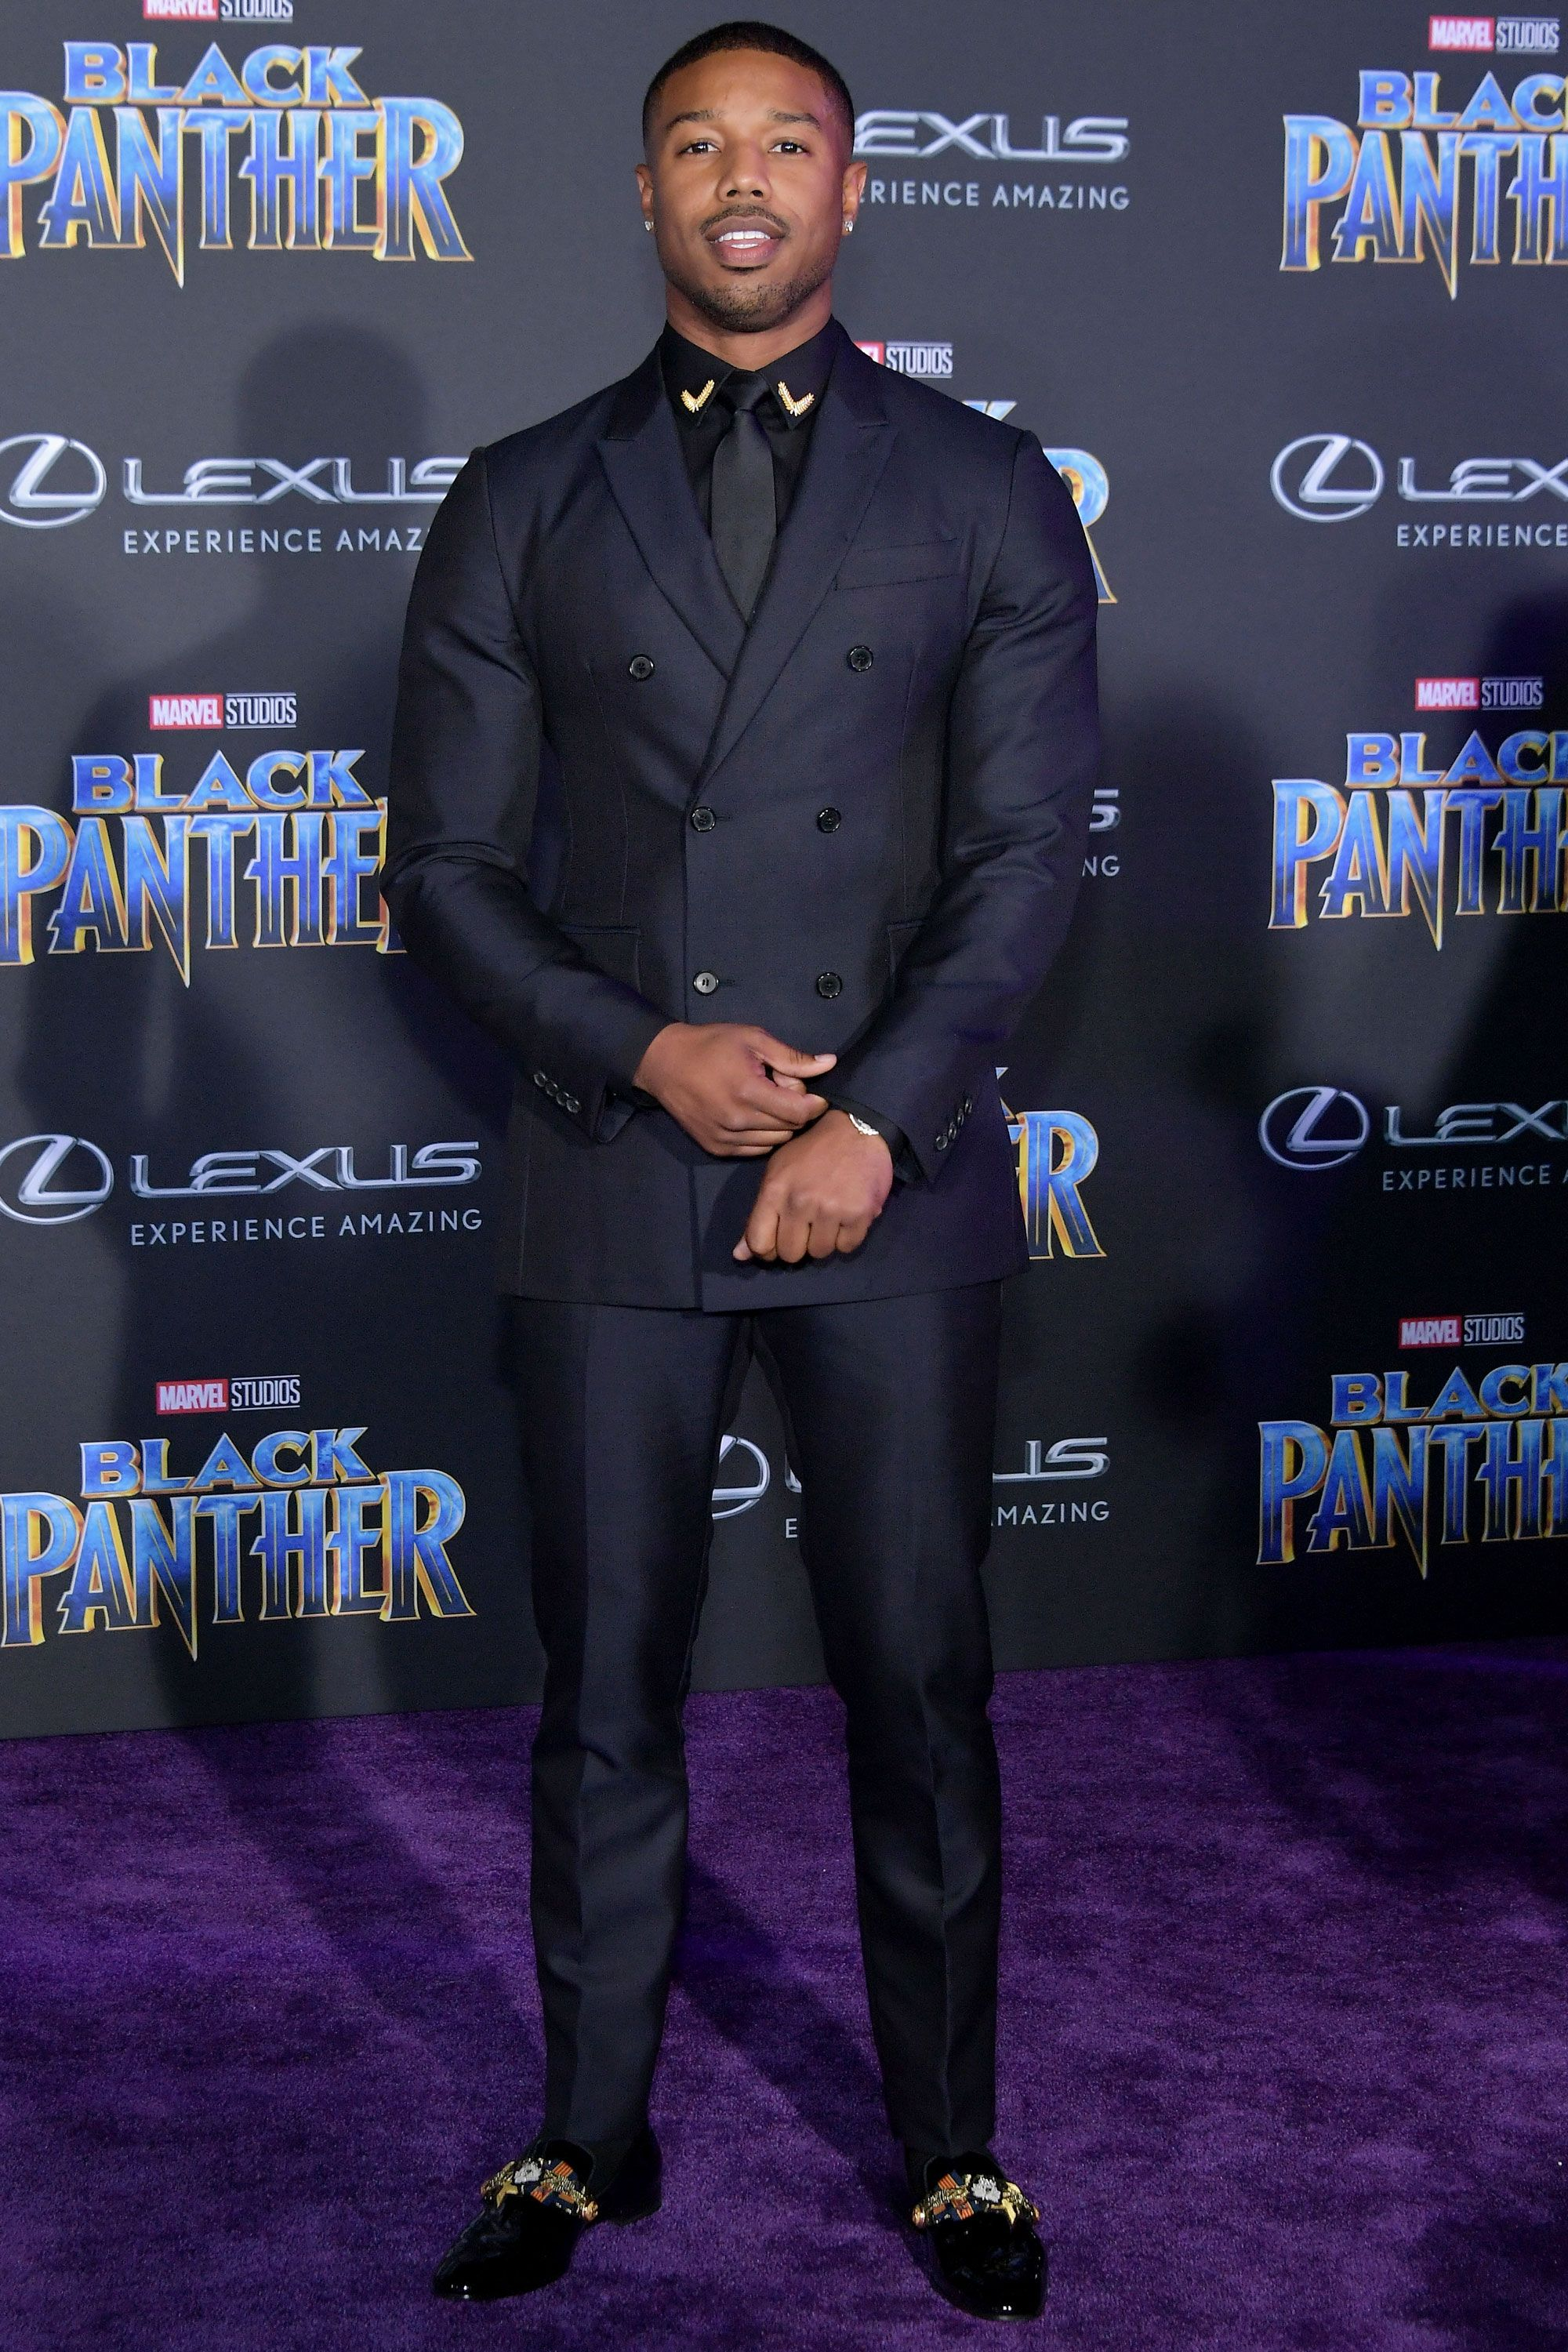 655f55cf3 Lupita Nyong'o's Plunging Black Panther Premiere Gown Makes Her Look ...